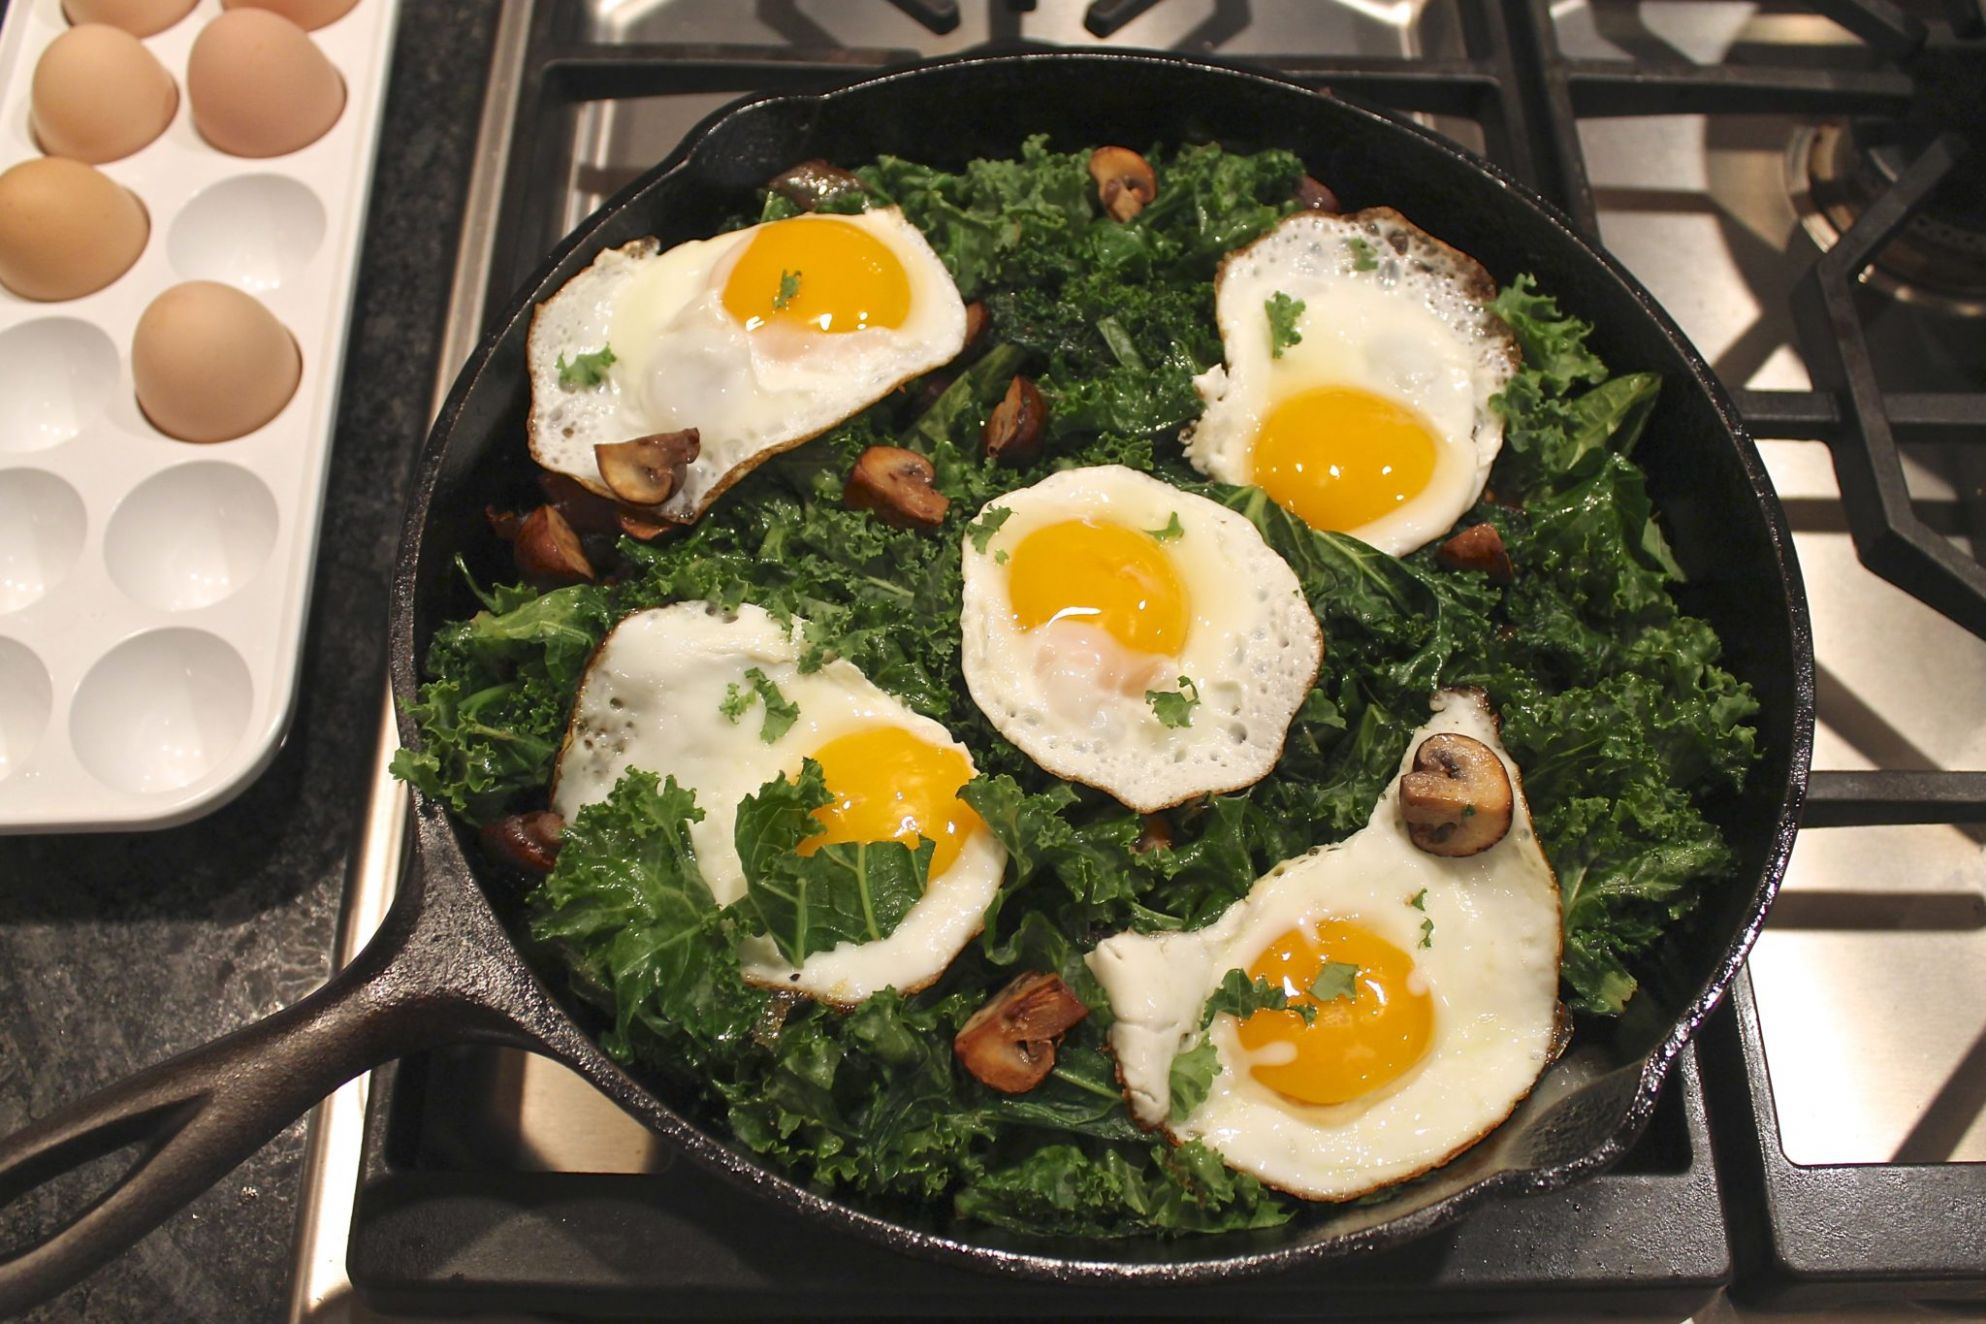 Kale and Eggs – The Fountain Avenue Kitchen